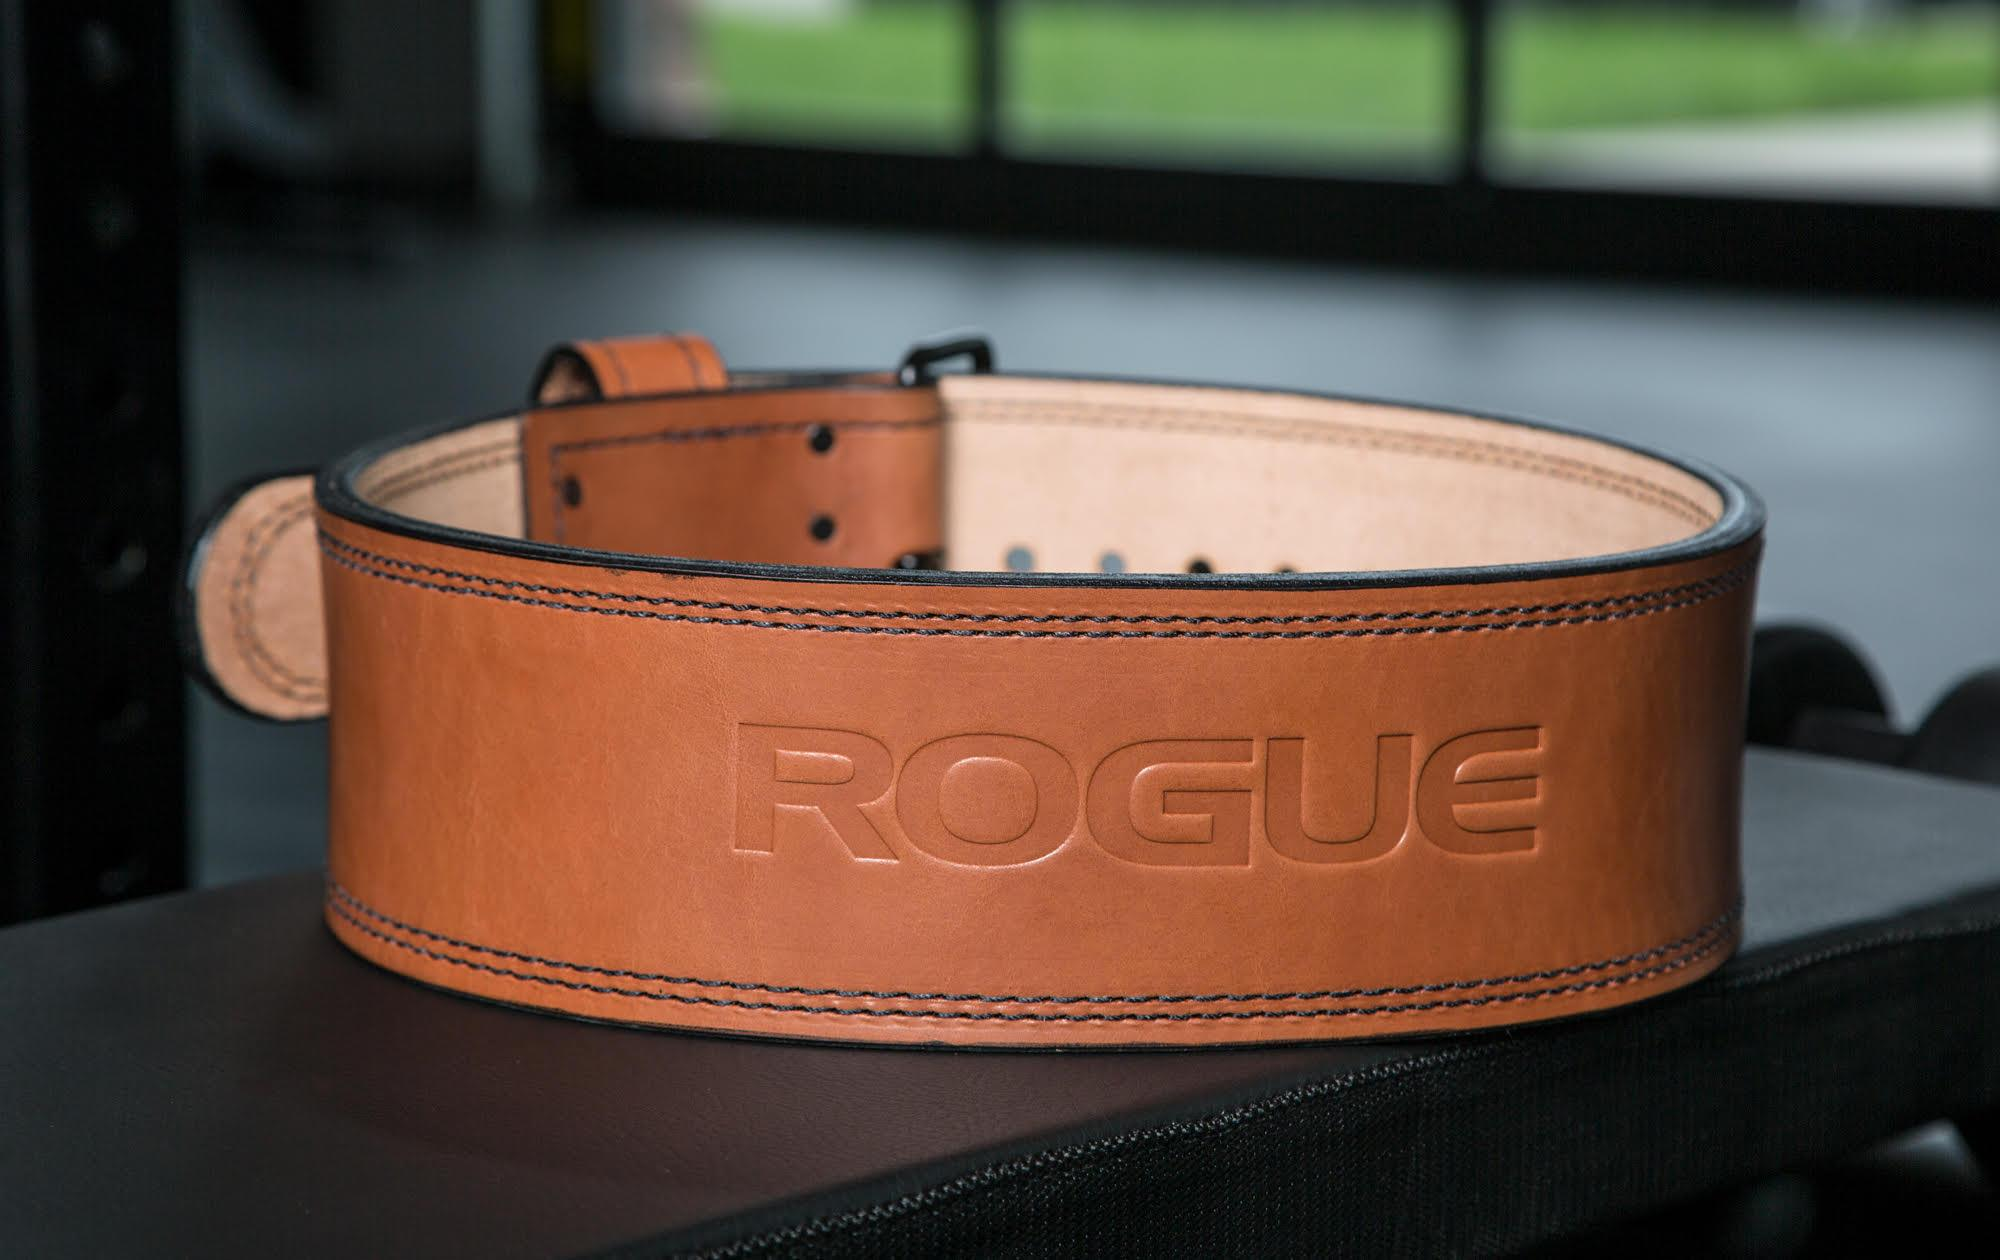 Rogue premium lifting belt